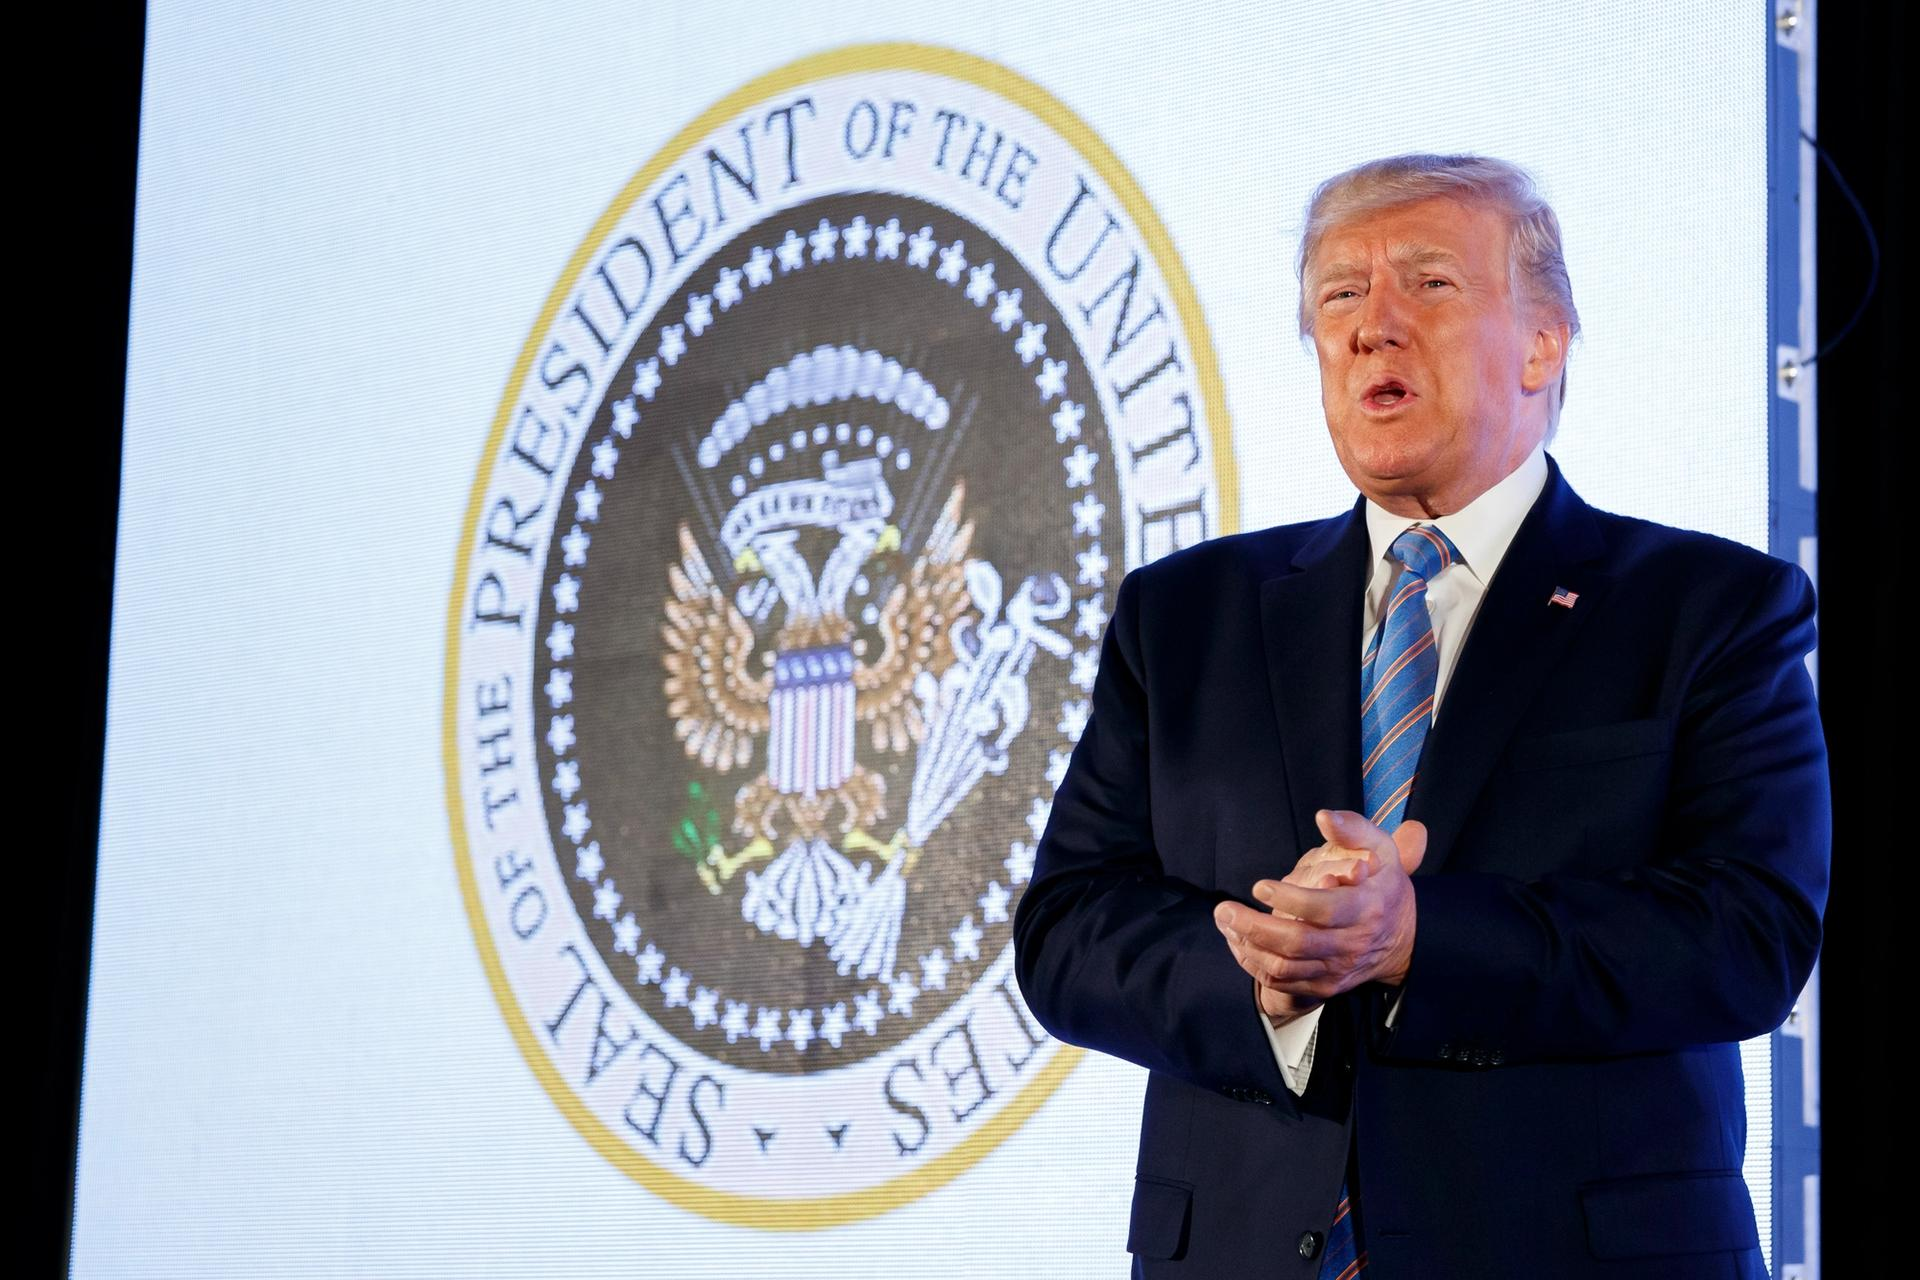 President Donald Trump arrives to speak, with an altered presidential seal behind him, at Turning Point USA's Teen Student Action Summit 2019 AP Photo/Alex Brandon